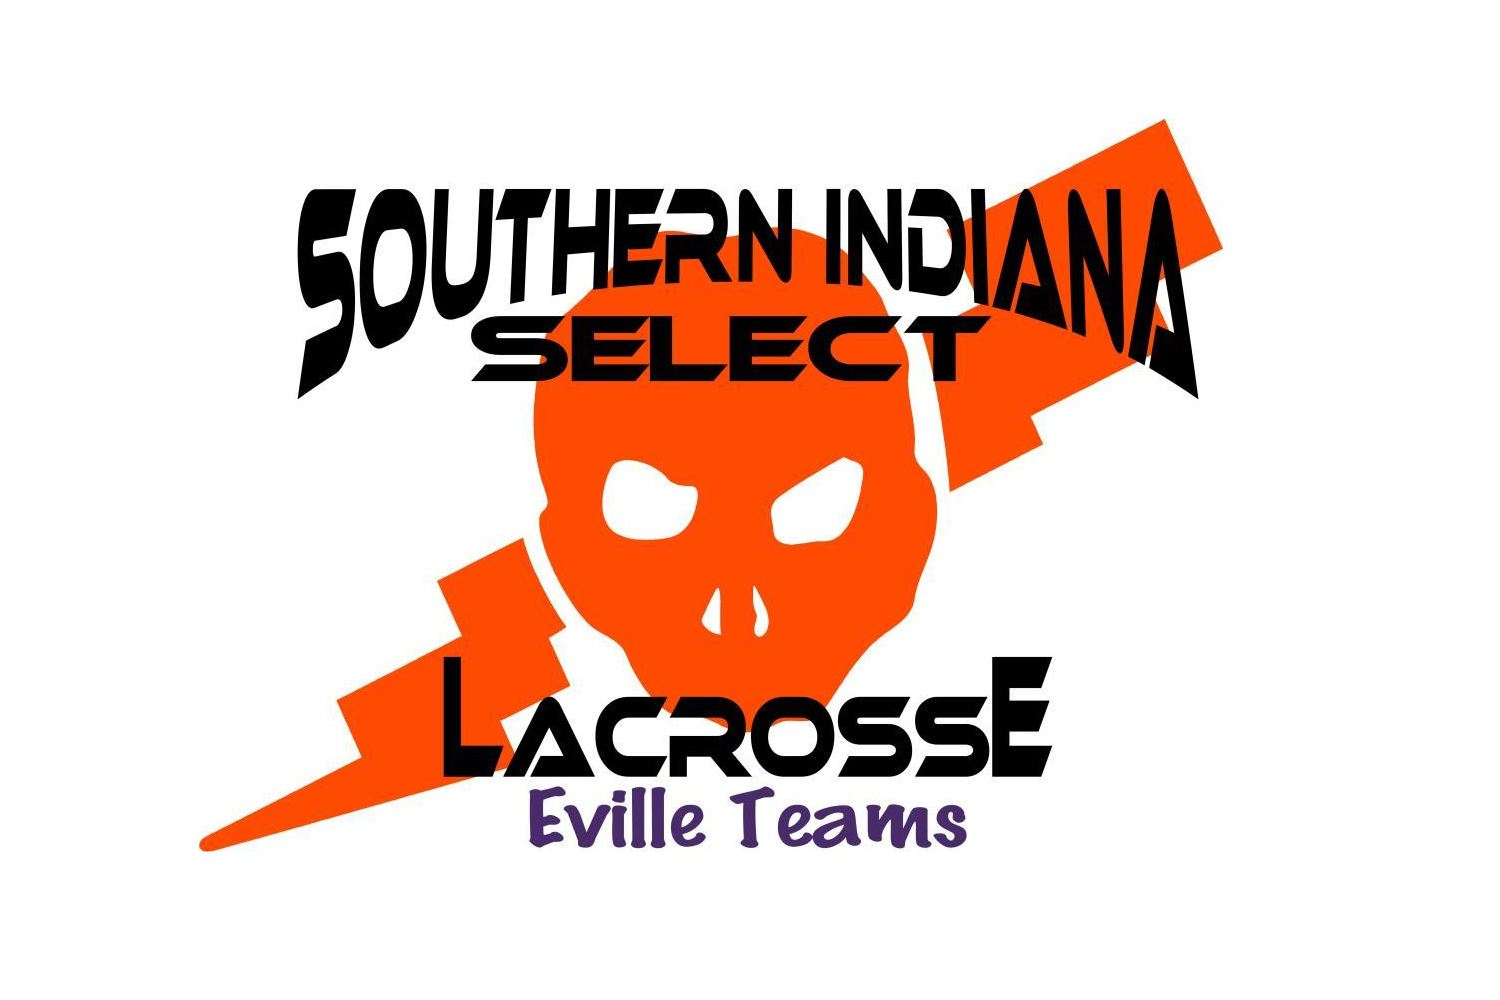 Southern Indiana Select Lacrosse - Eville Storm Orange (U17)